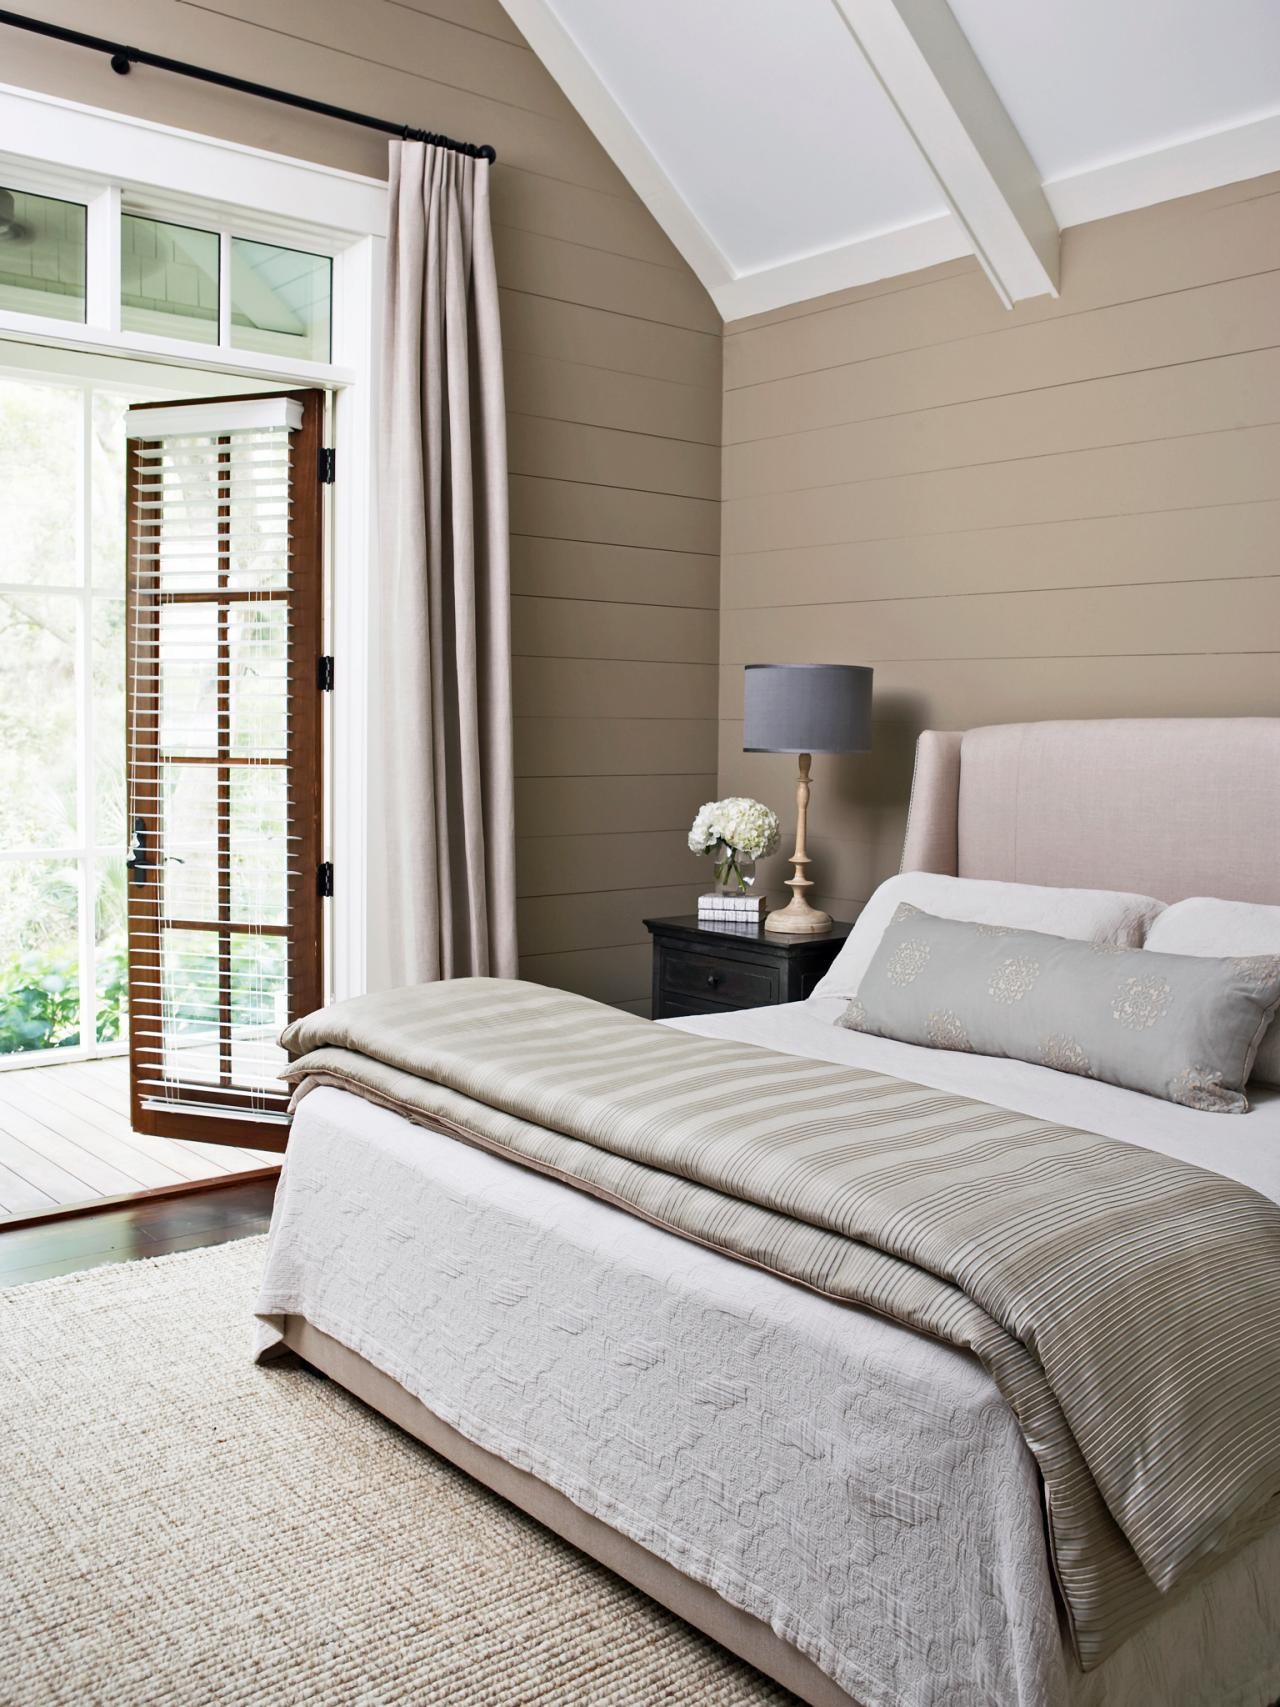 9 Add Horizontal Wood Planks To The Walls Small Neutral Bedroom